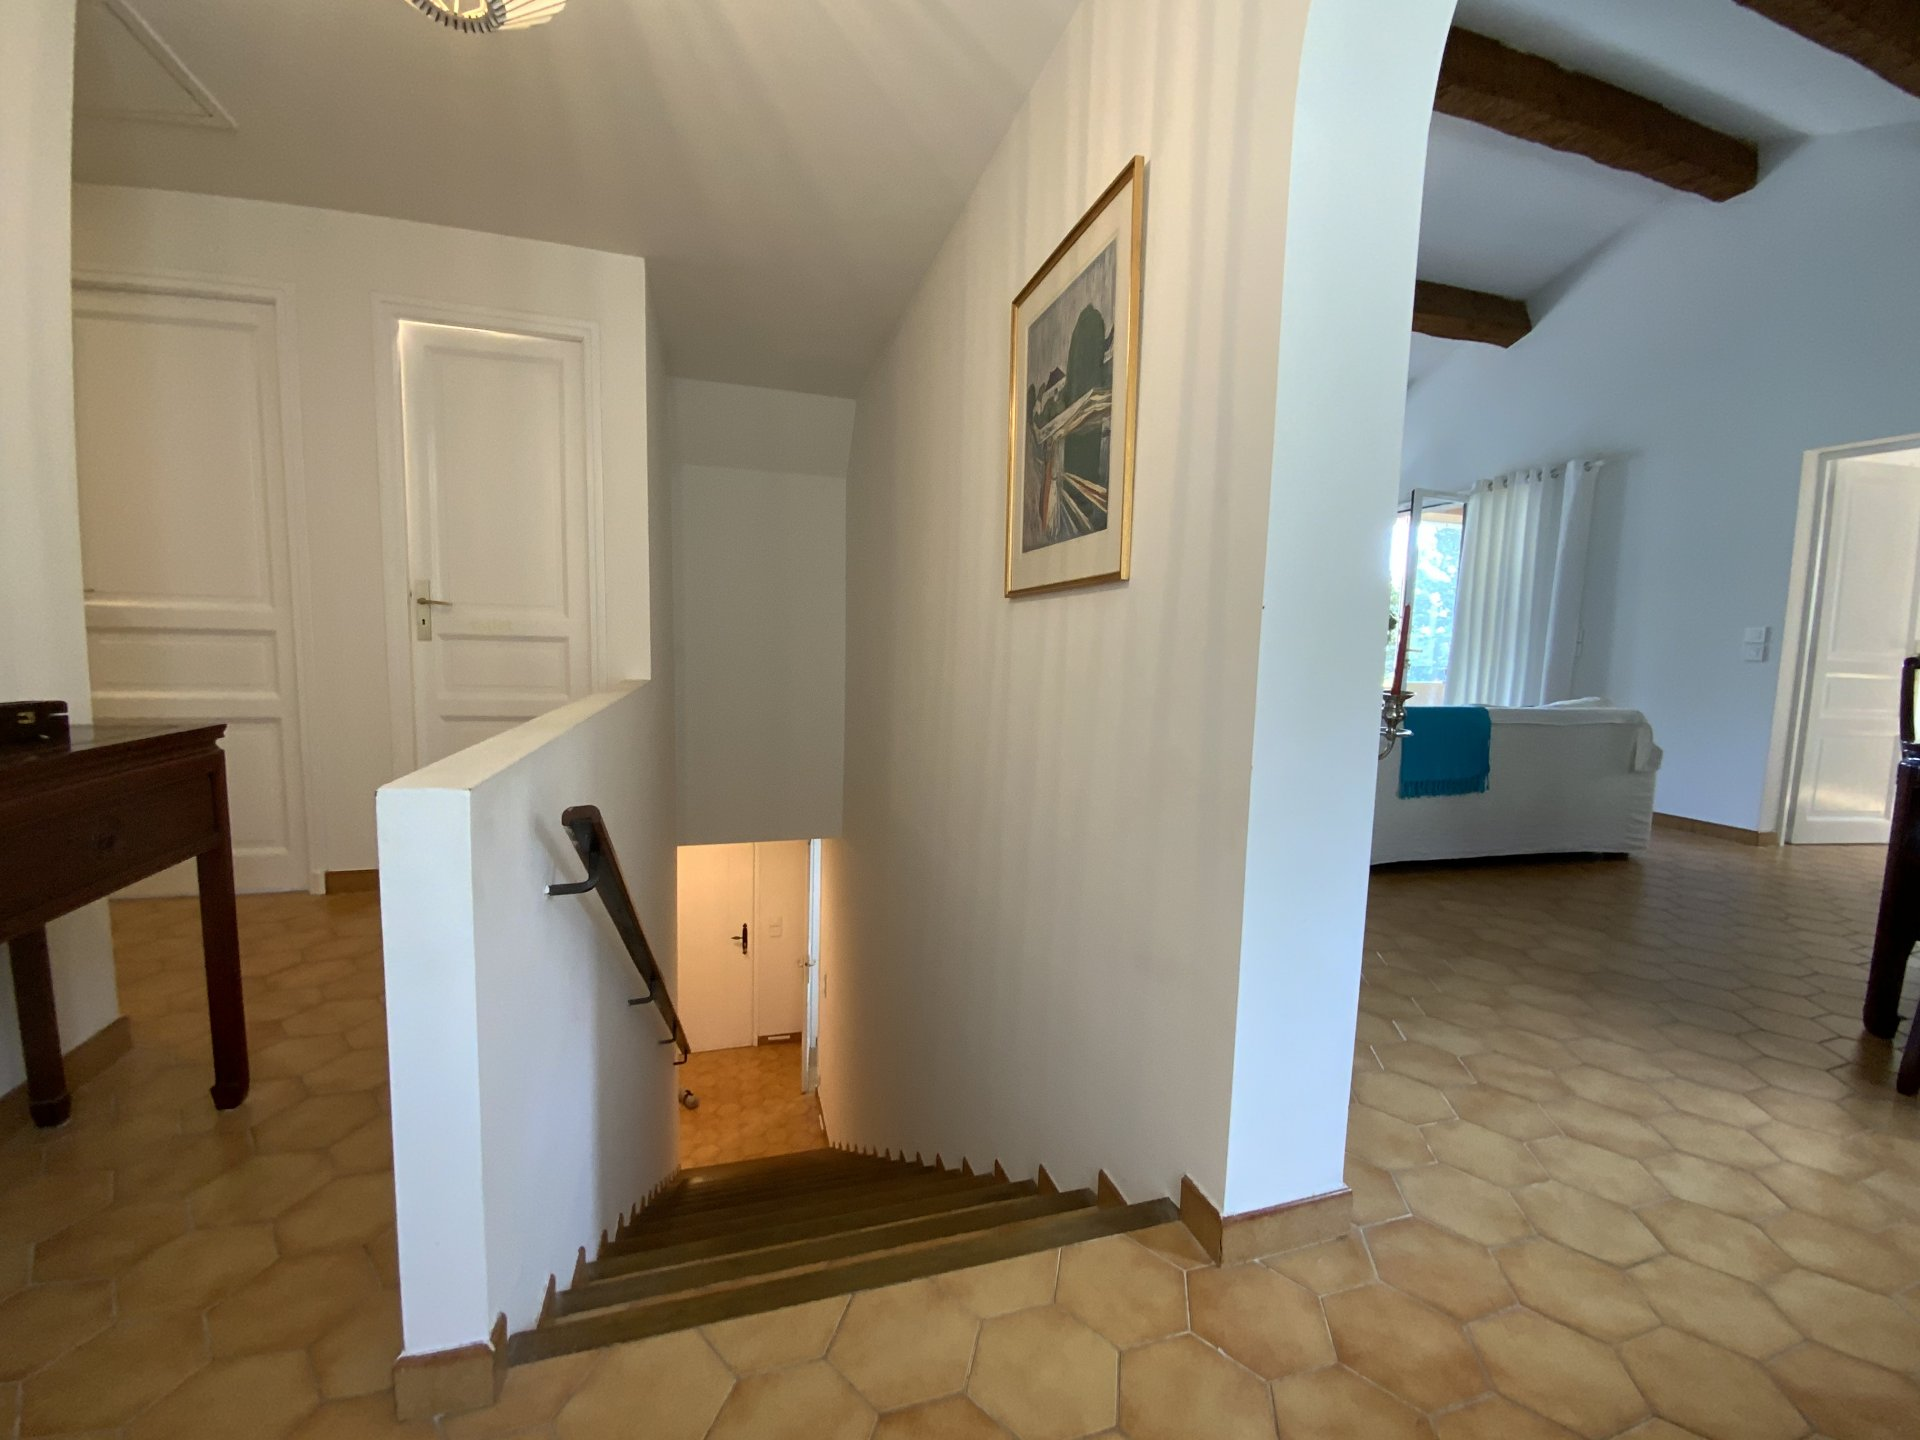 RENOVATED VILLA WITH SWIMMING POOL - 5 BEDROOMS - PANORAMIC VIEW